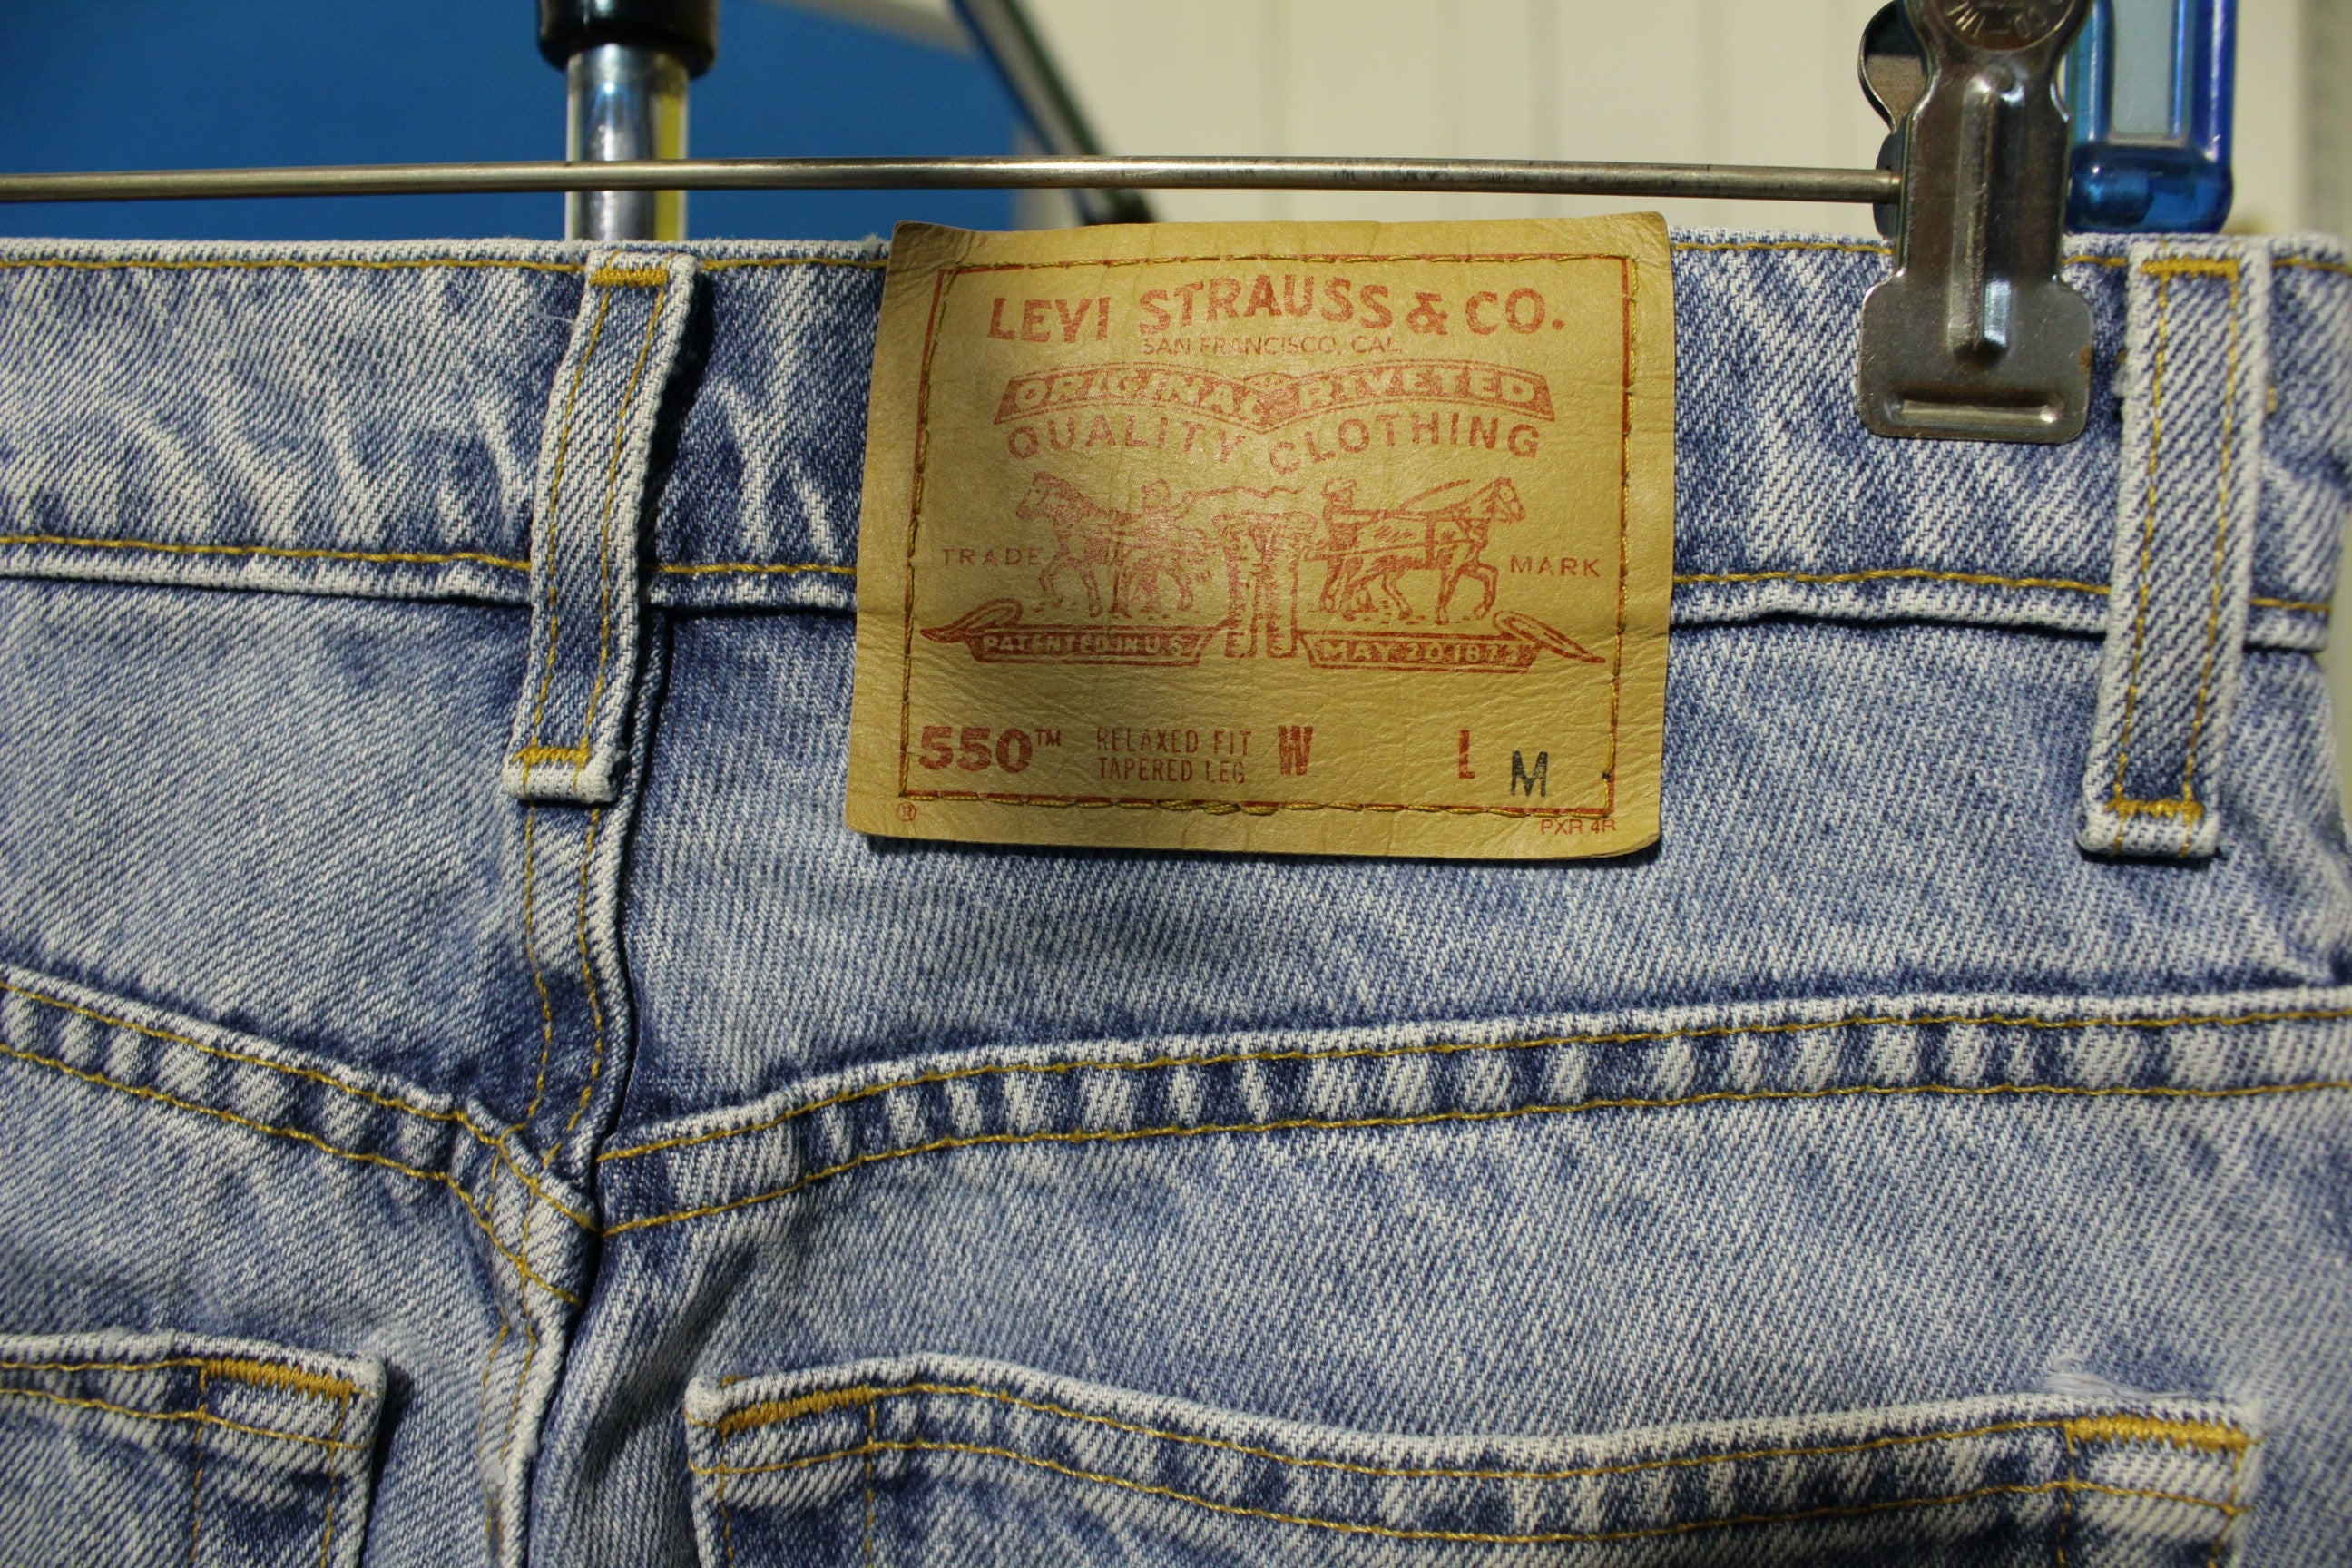 Levis White 550 Made in USA Women's Faded Jeans Vintage 90's 28x30 Tapered